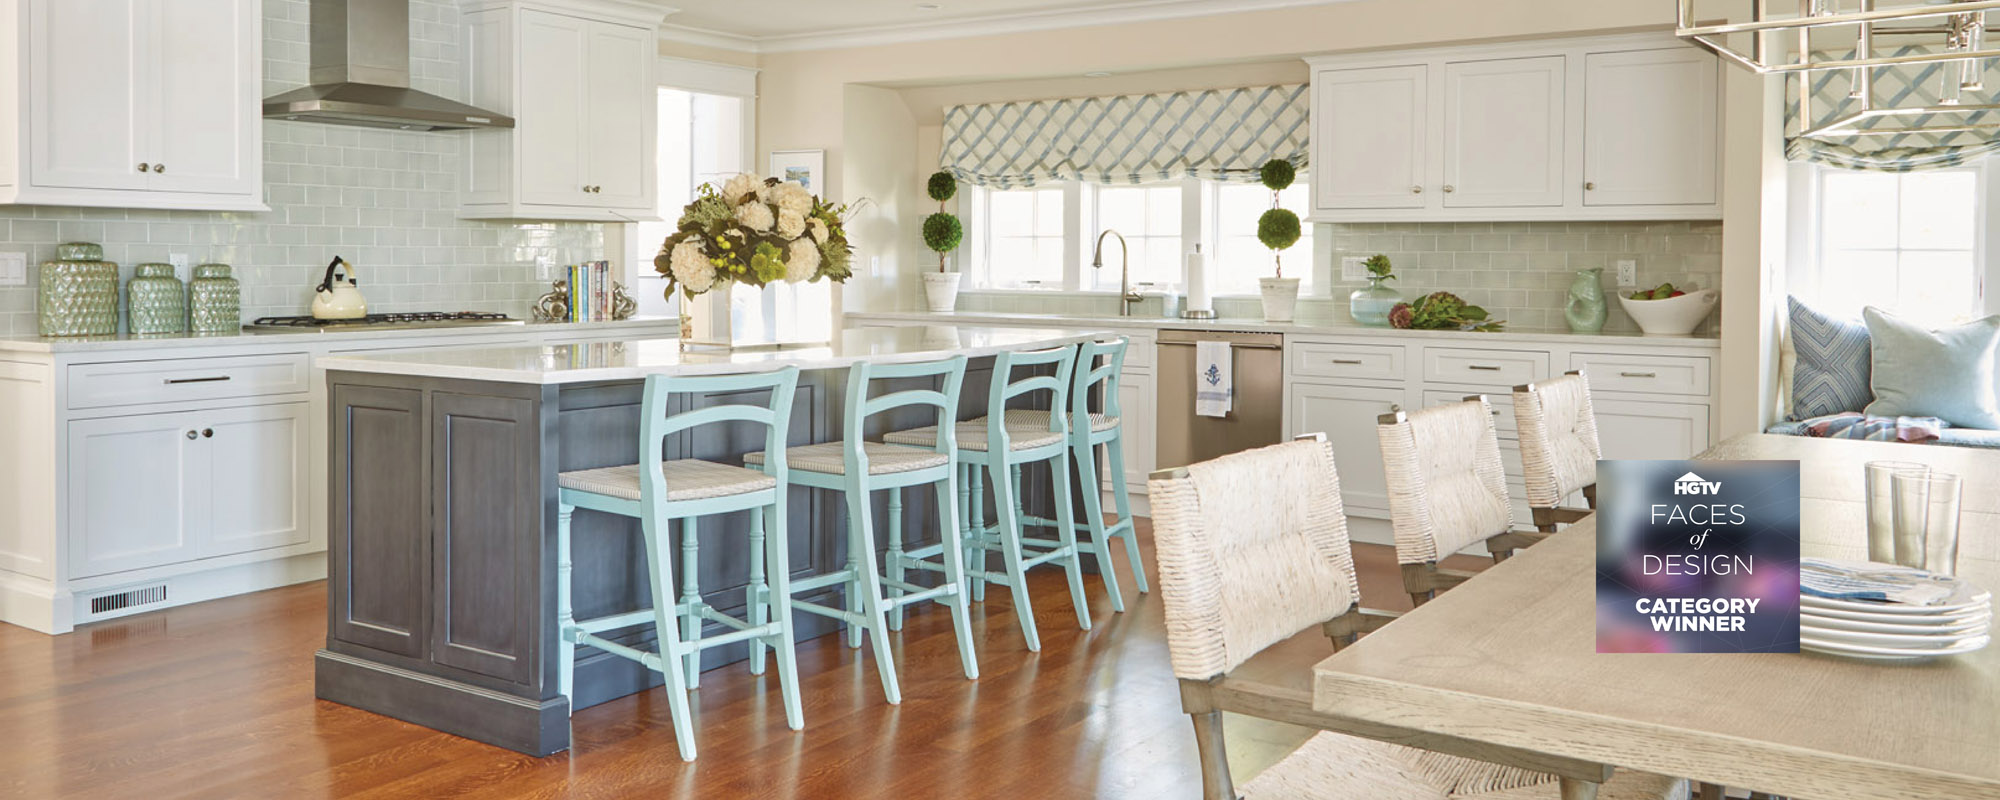 hgtv-casa-inspired life-kitch